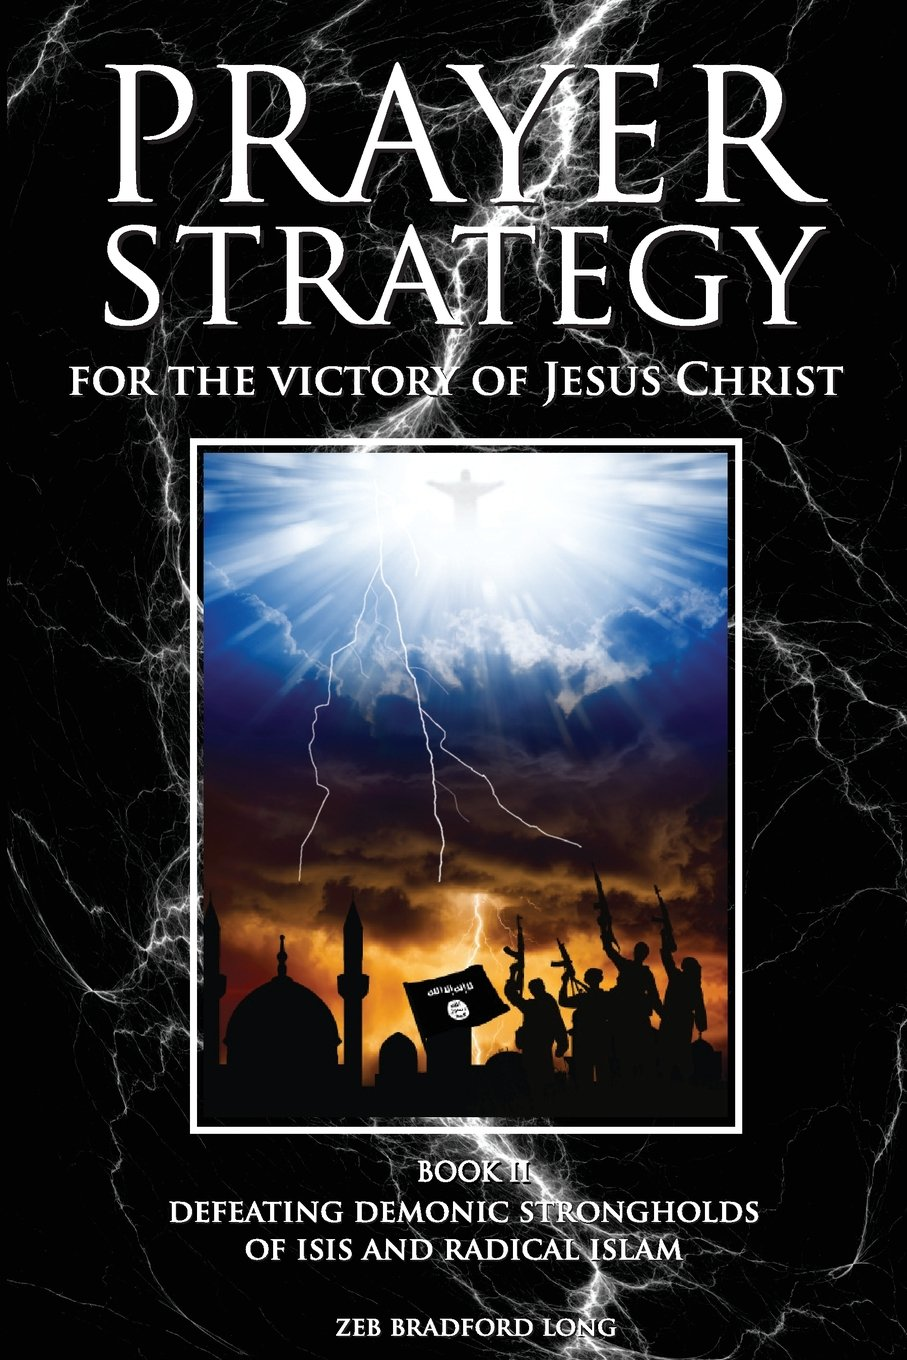 Book 2 A Prayer Strategy for the Victory of Jesus Christ